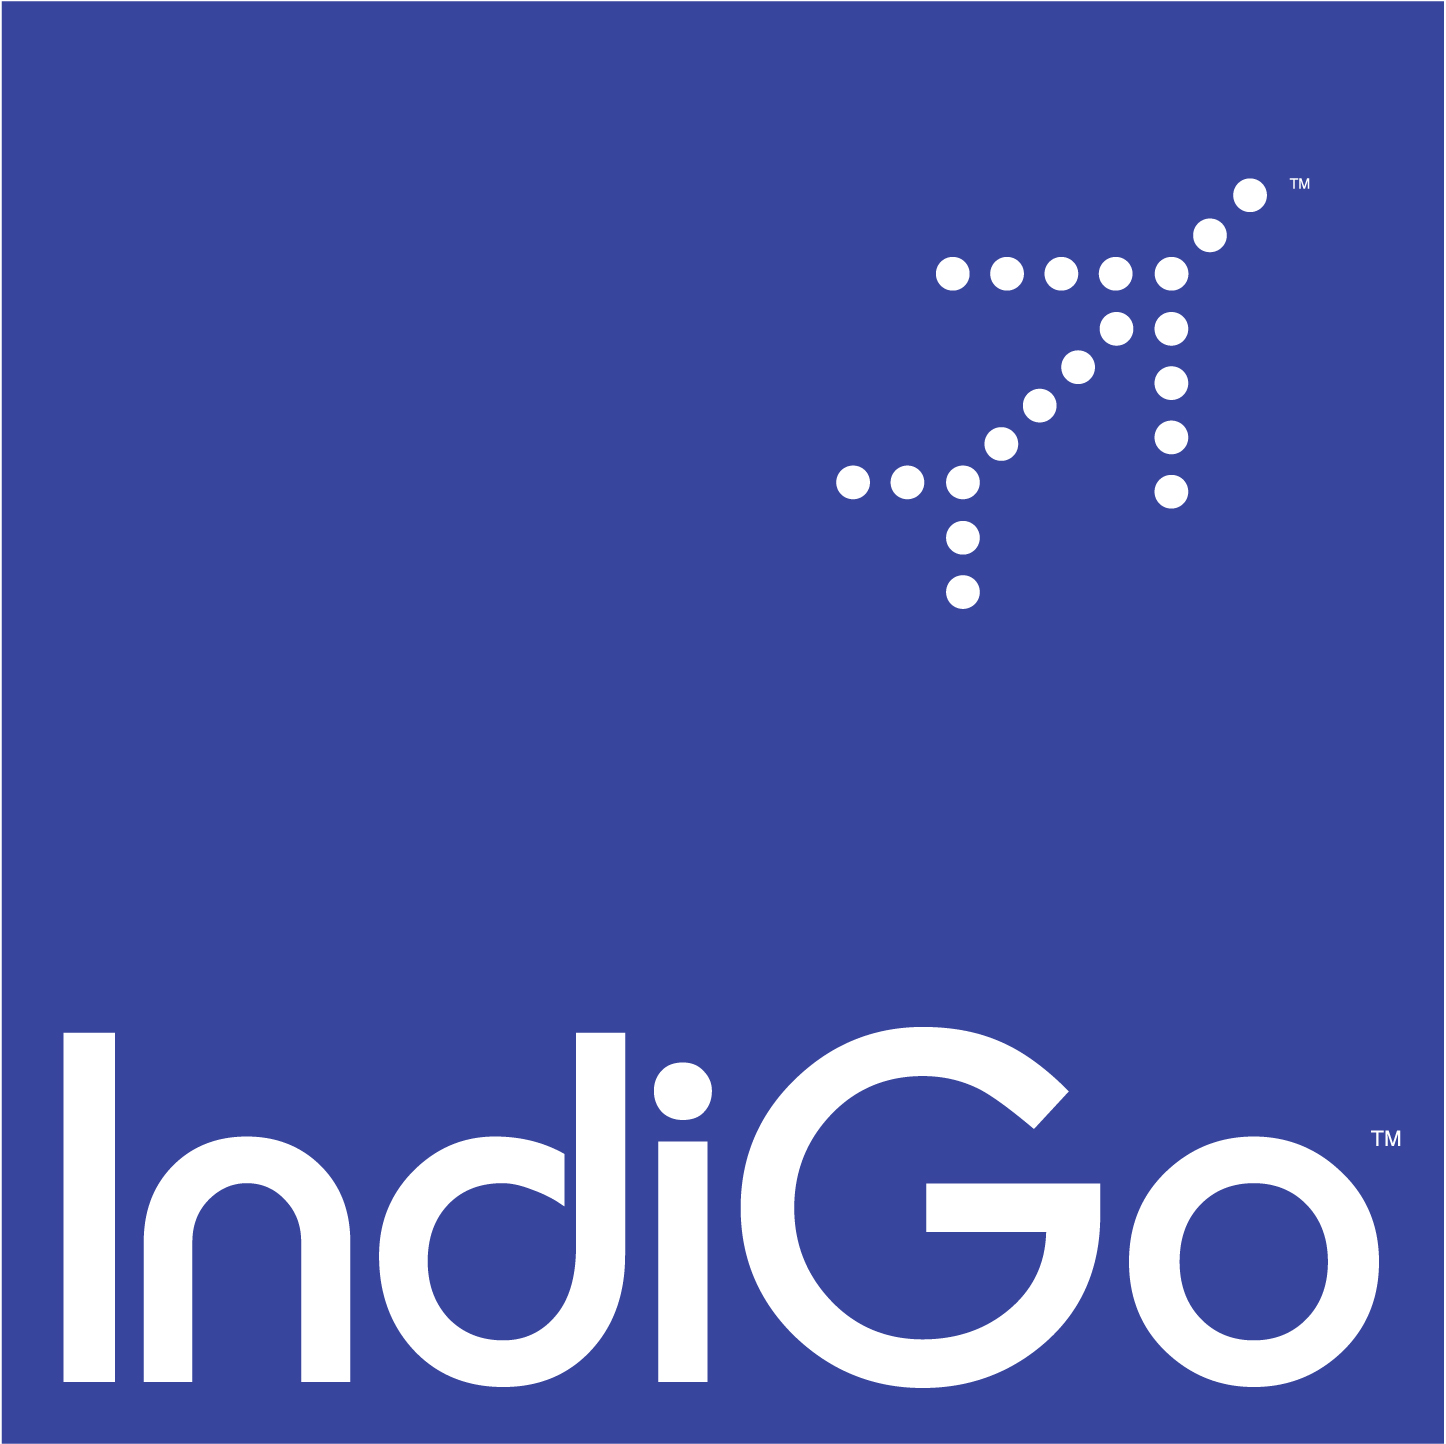 indigo cancelled flights